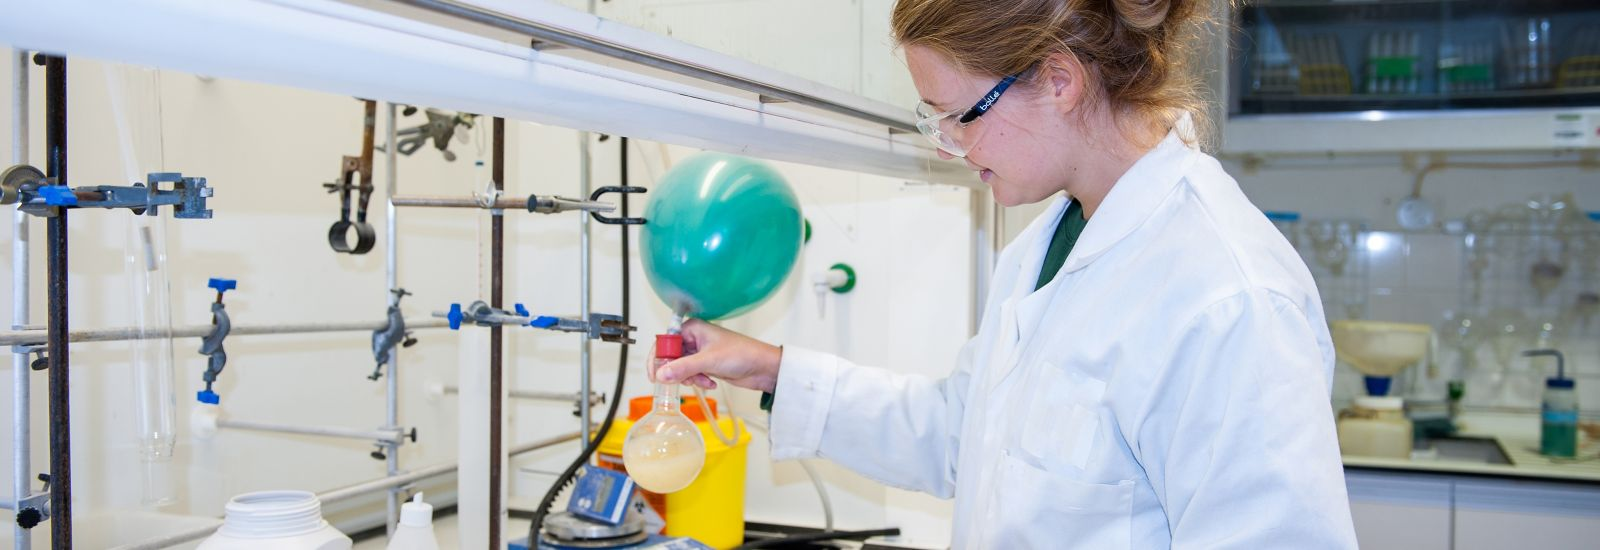 A student performs an experiment in a Chemistry lab